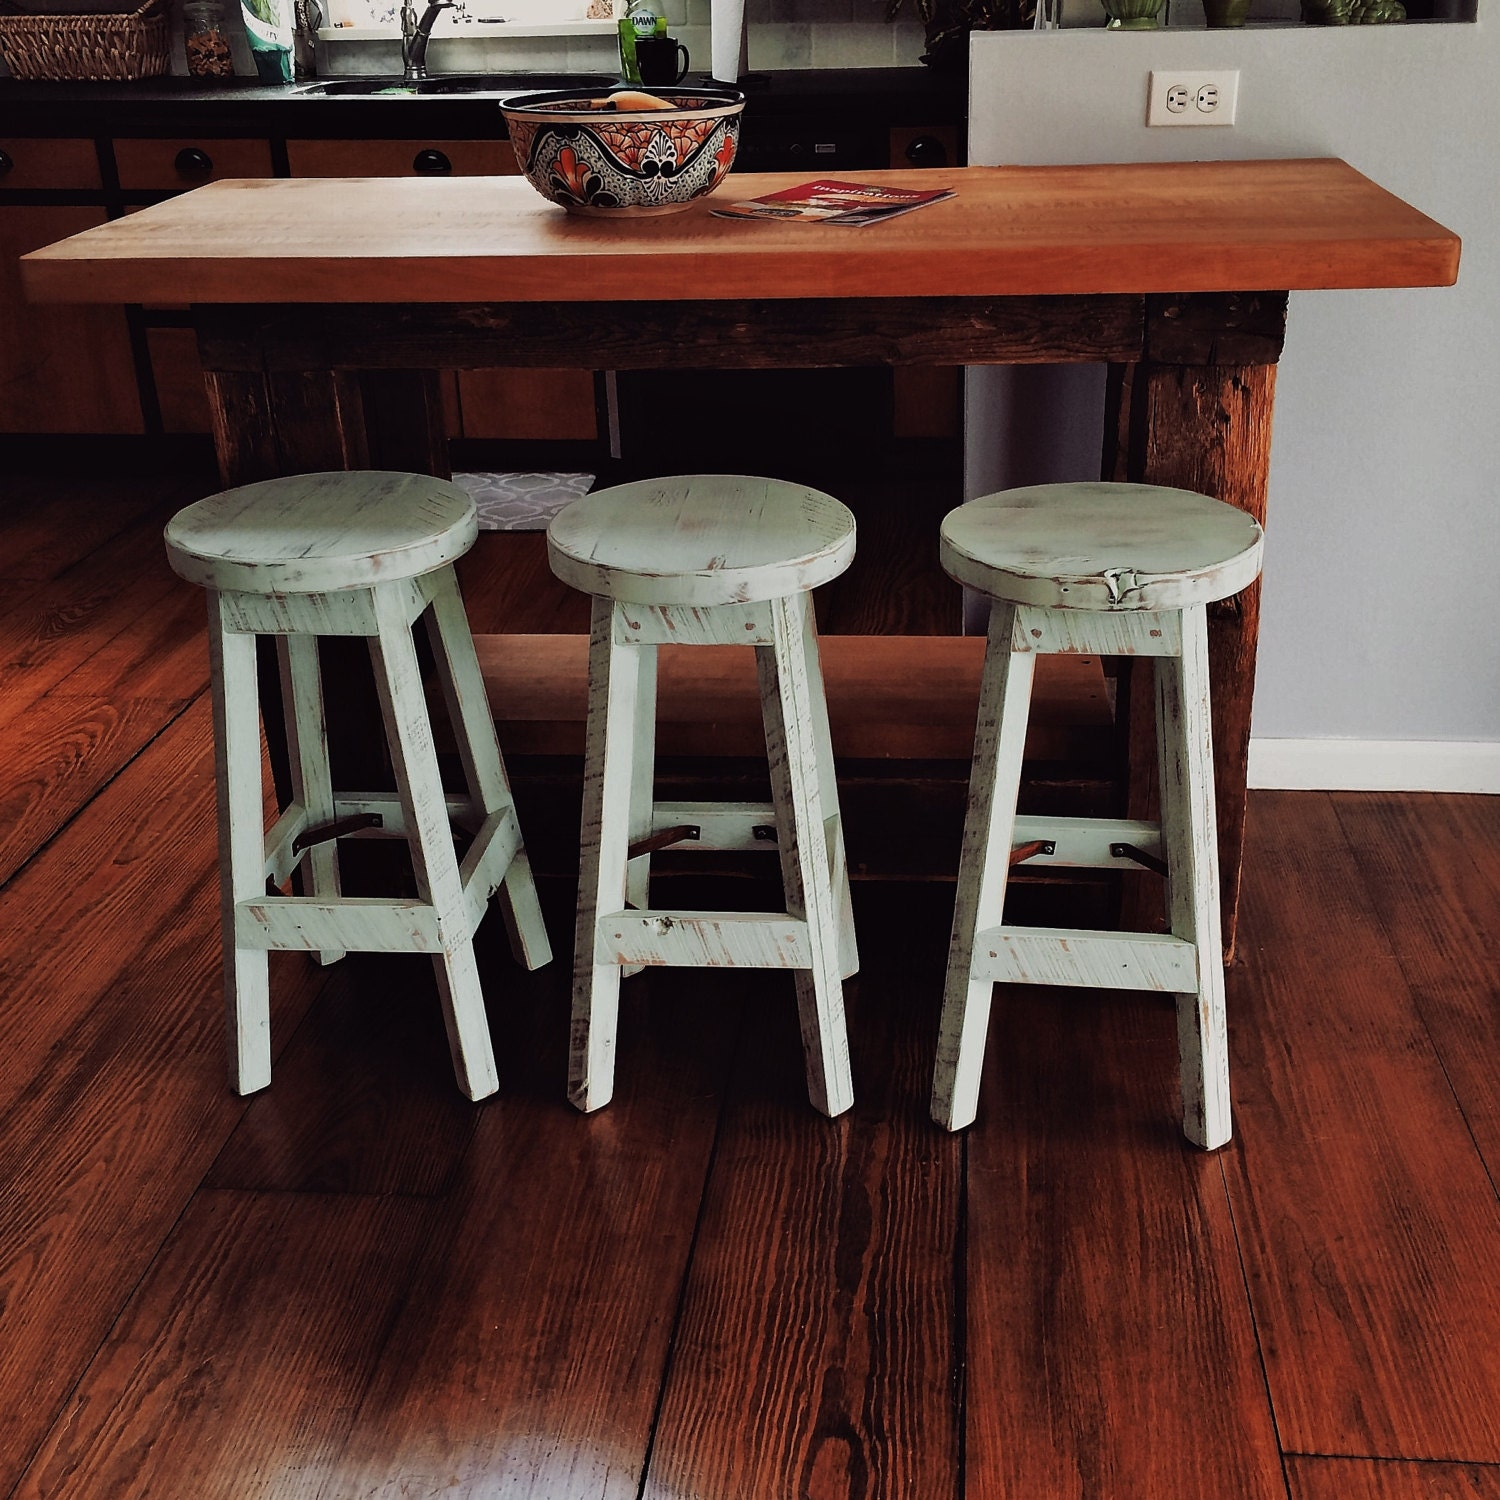 Bar Custom Wood And Woods: Bar Stool Rustic Reclaimed Barn Wood Finished W/Round Top